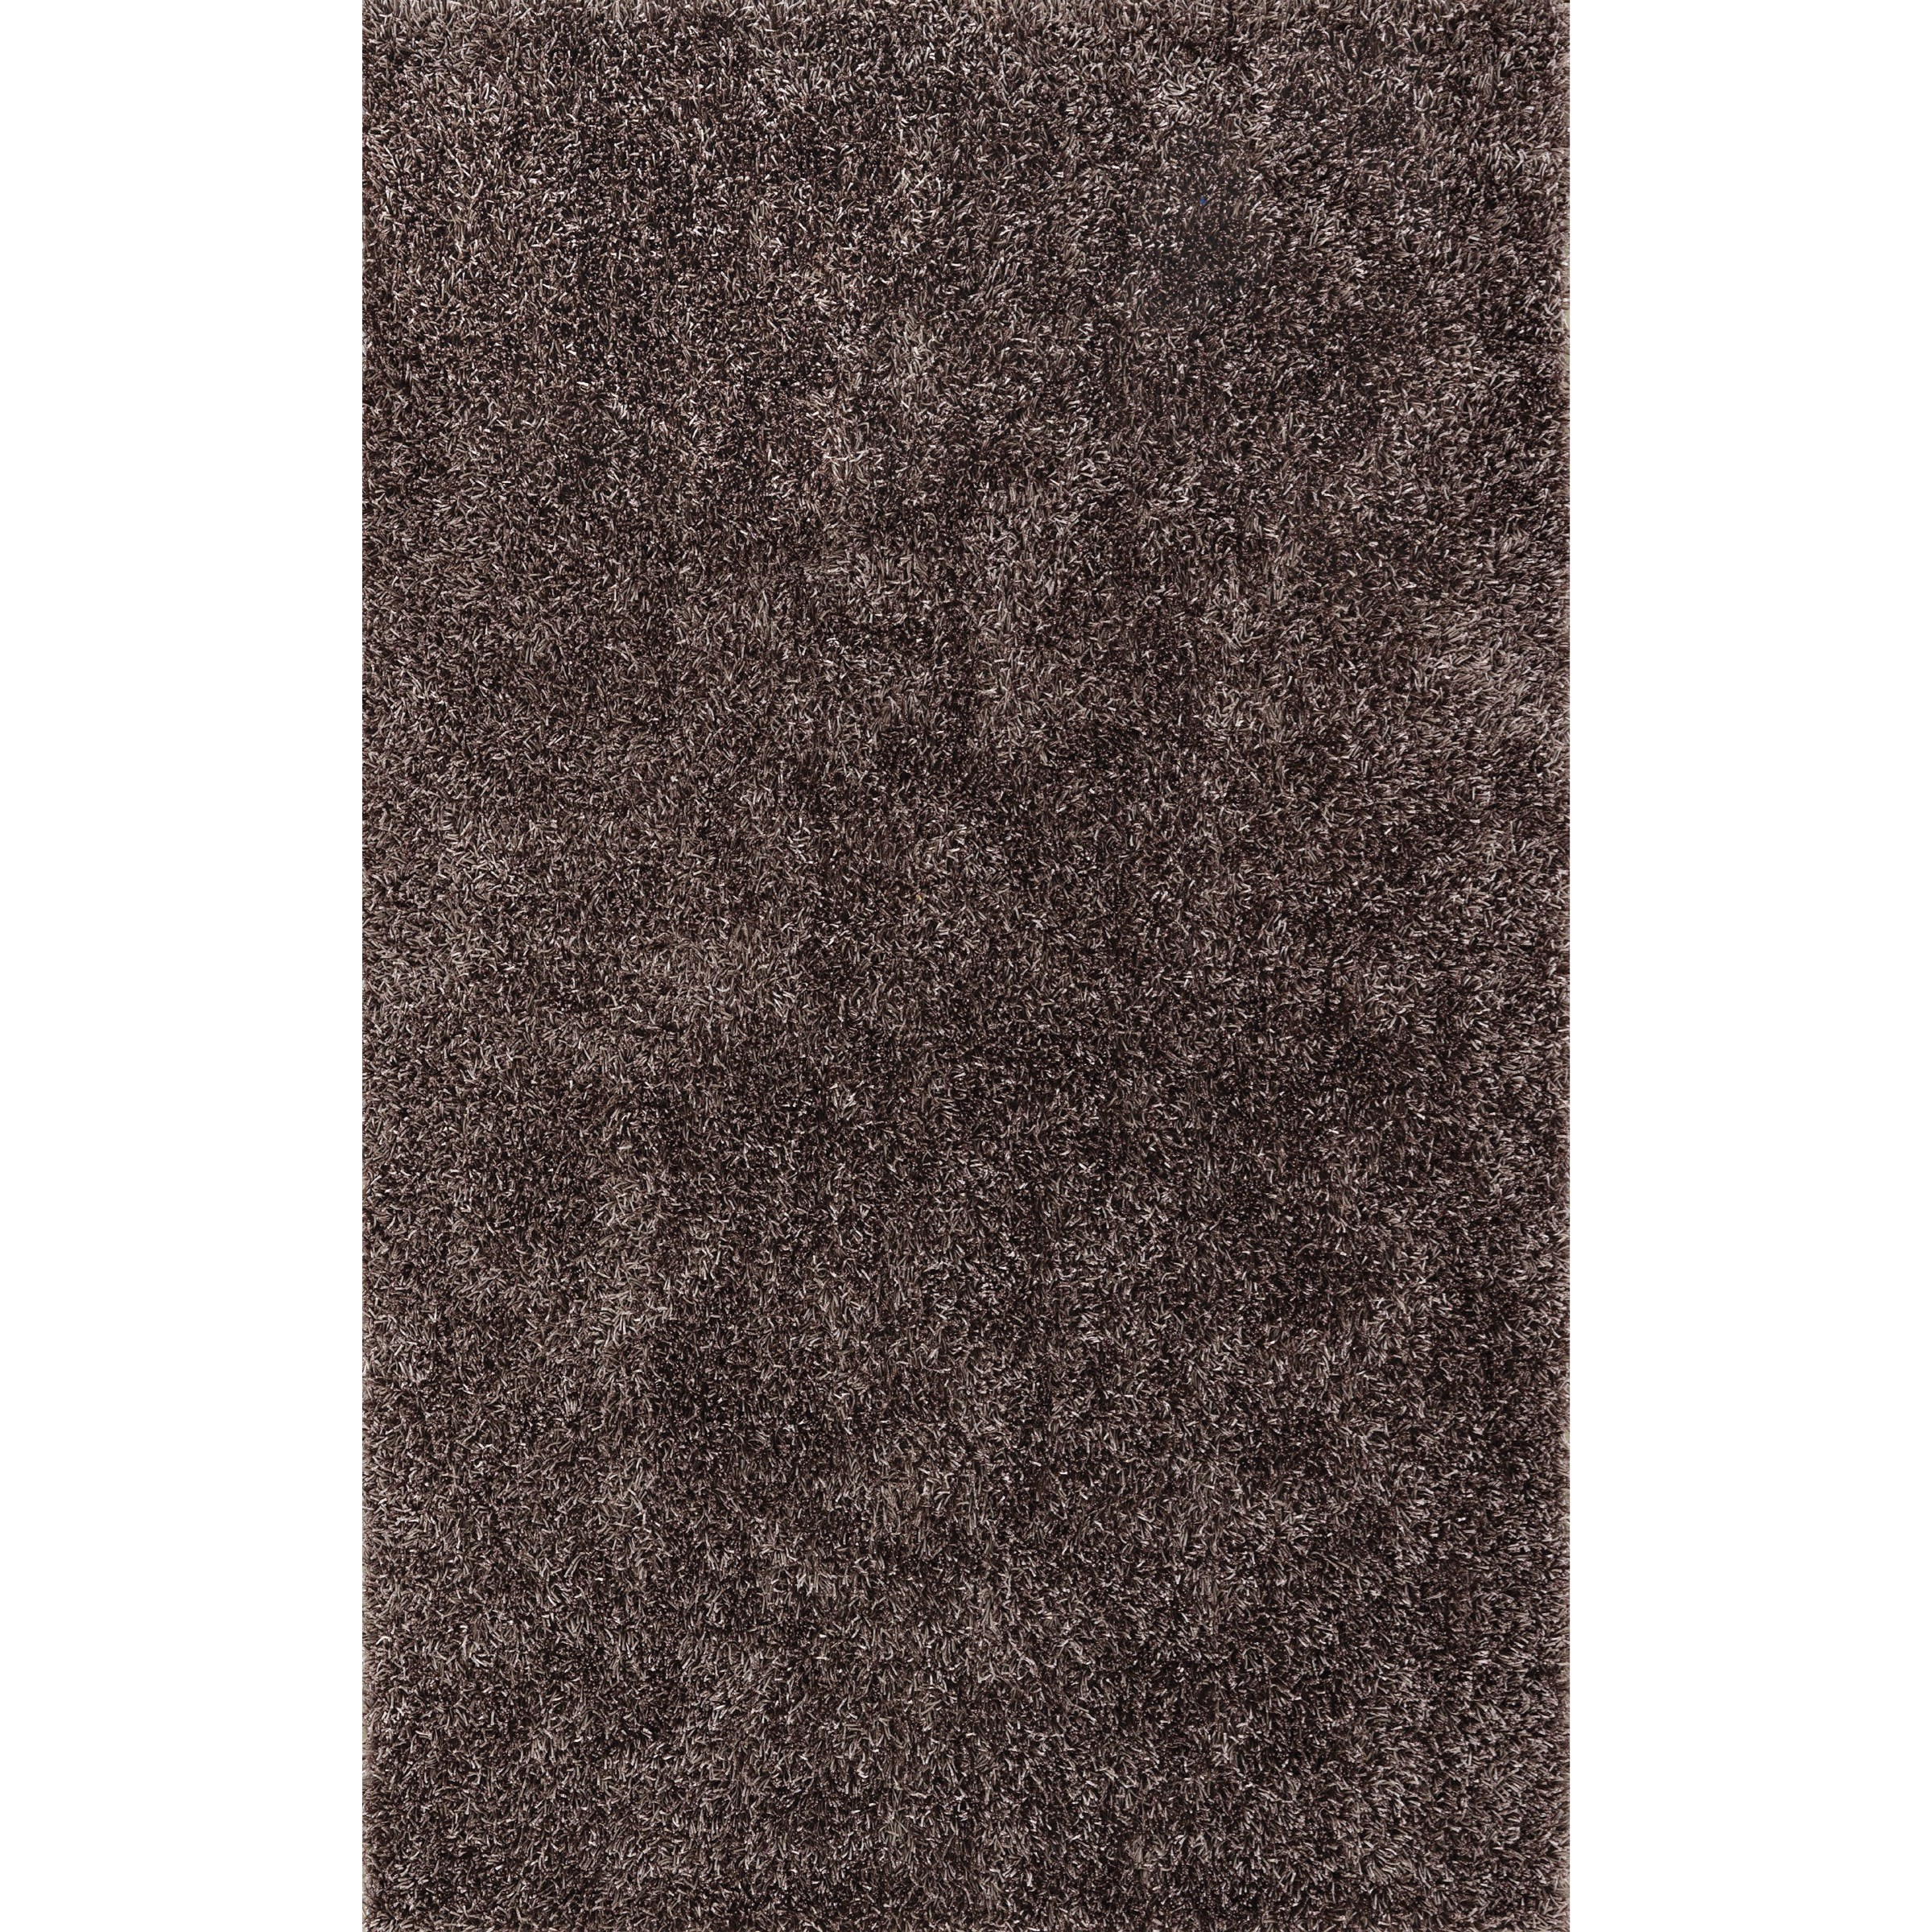 Dalyn Illusions Grey 9'X13' Rug - Item Number: IL69GY9X13